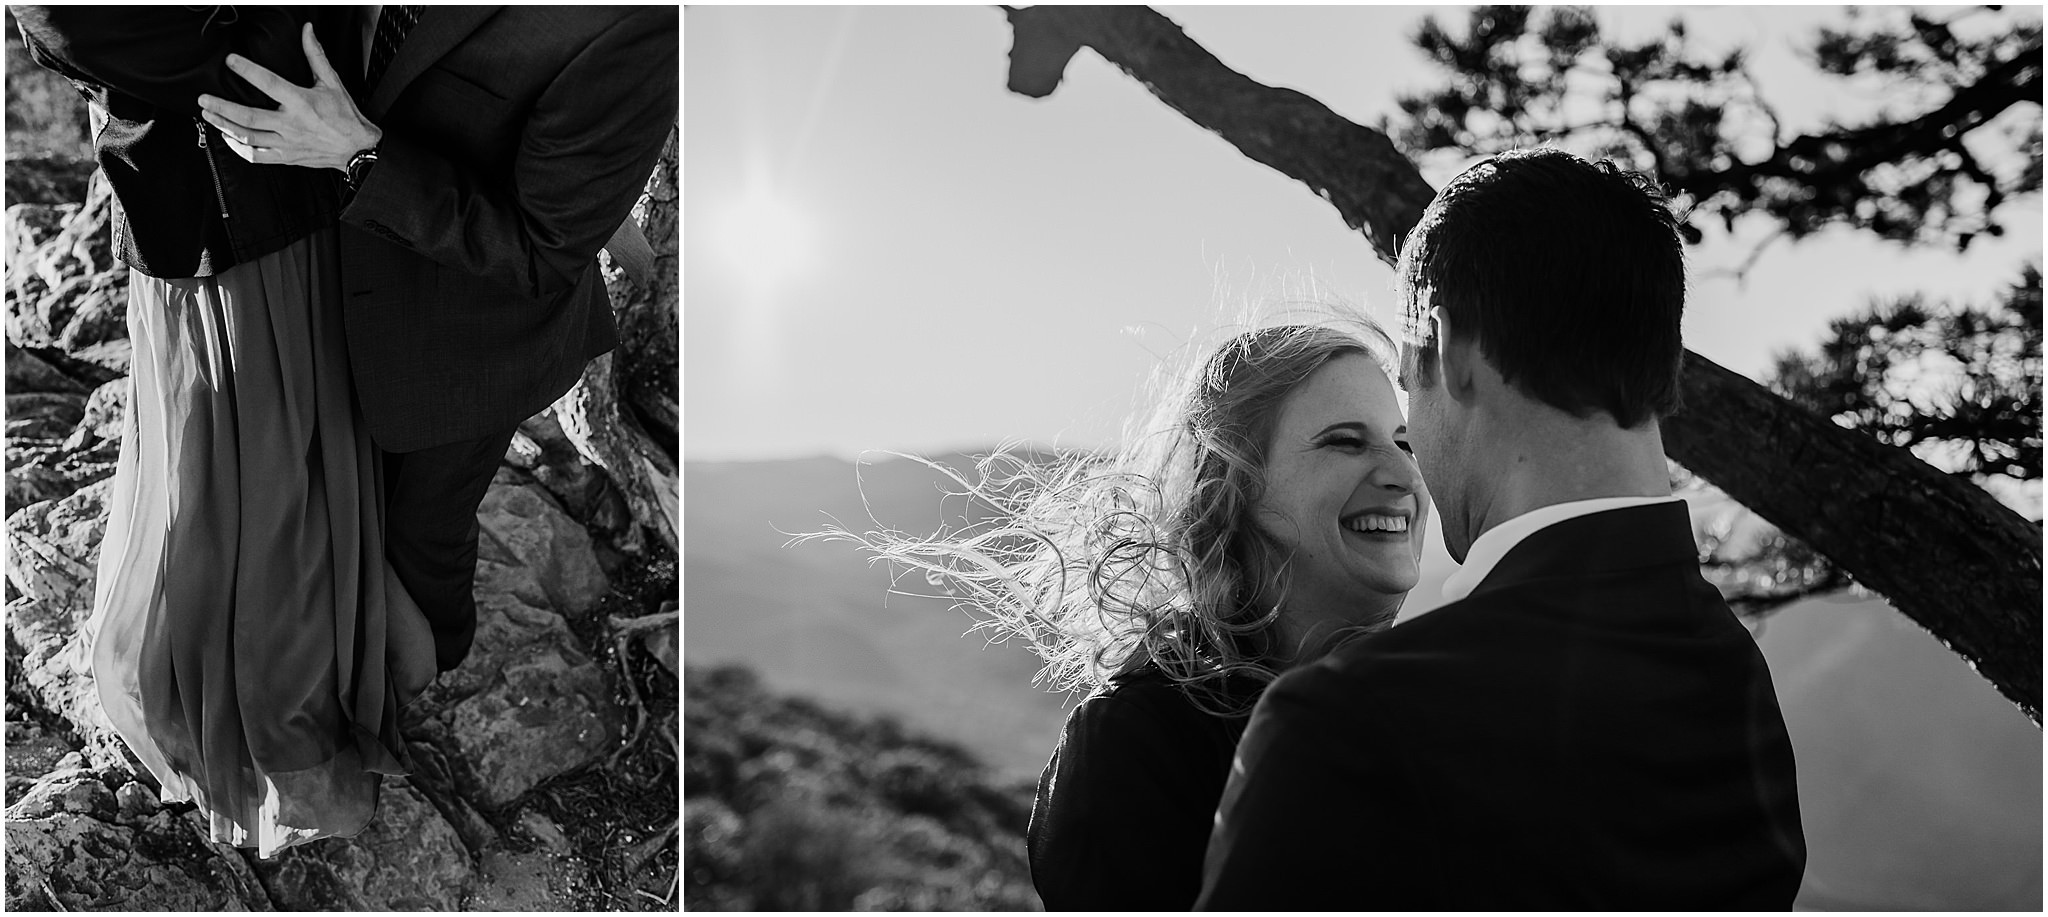 Ravens Roost Engagement Session,engagement session,lyndhurst virginia,ravens roost overlook blue ridge parkway, Alicia and Josh Ravens Roost Engagement Session